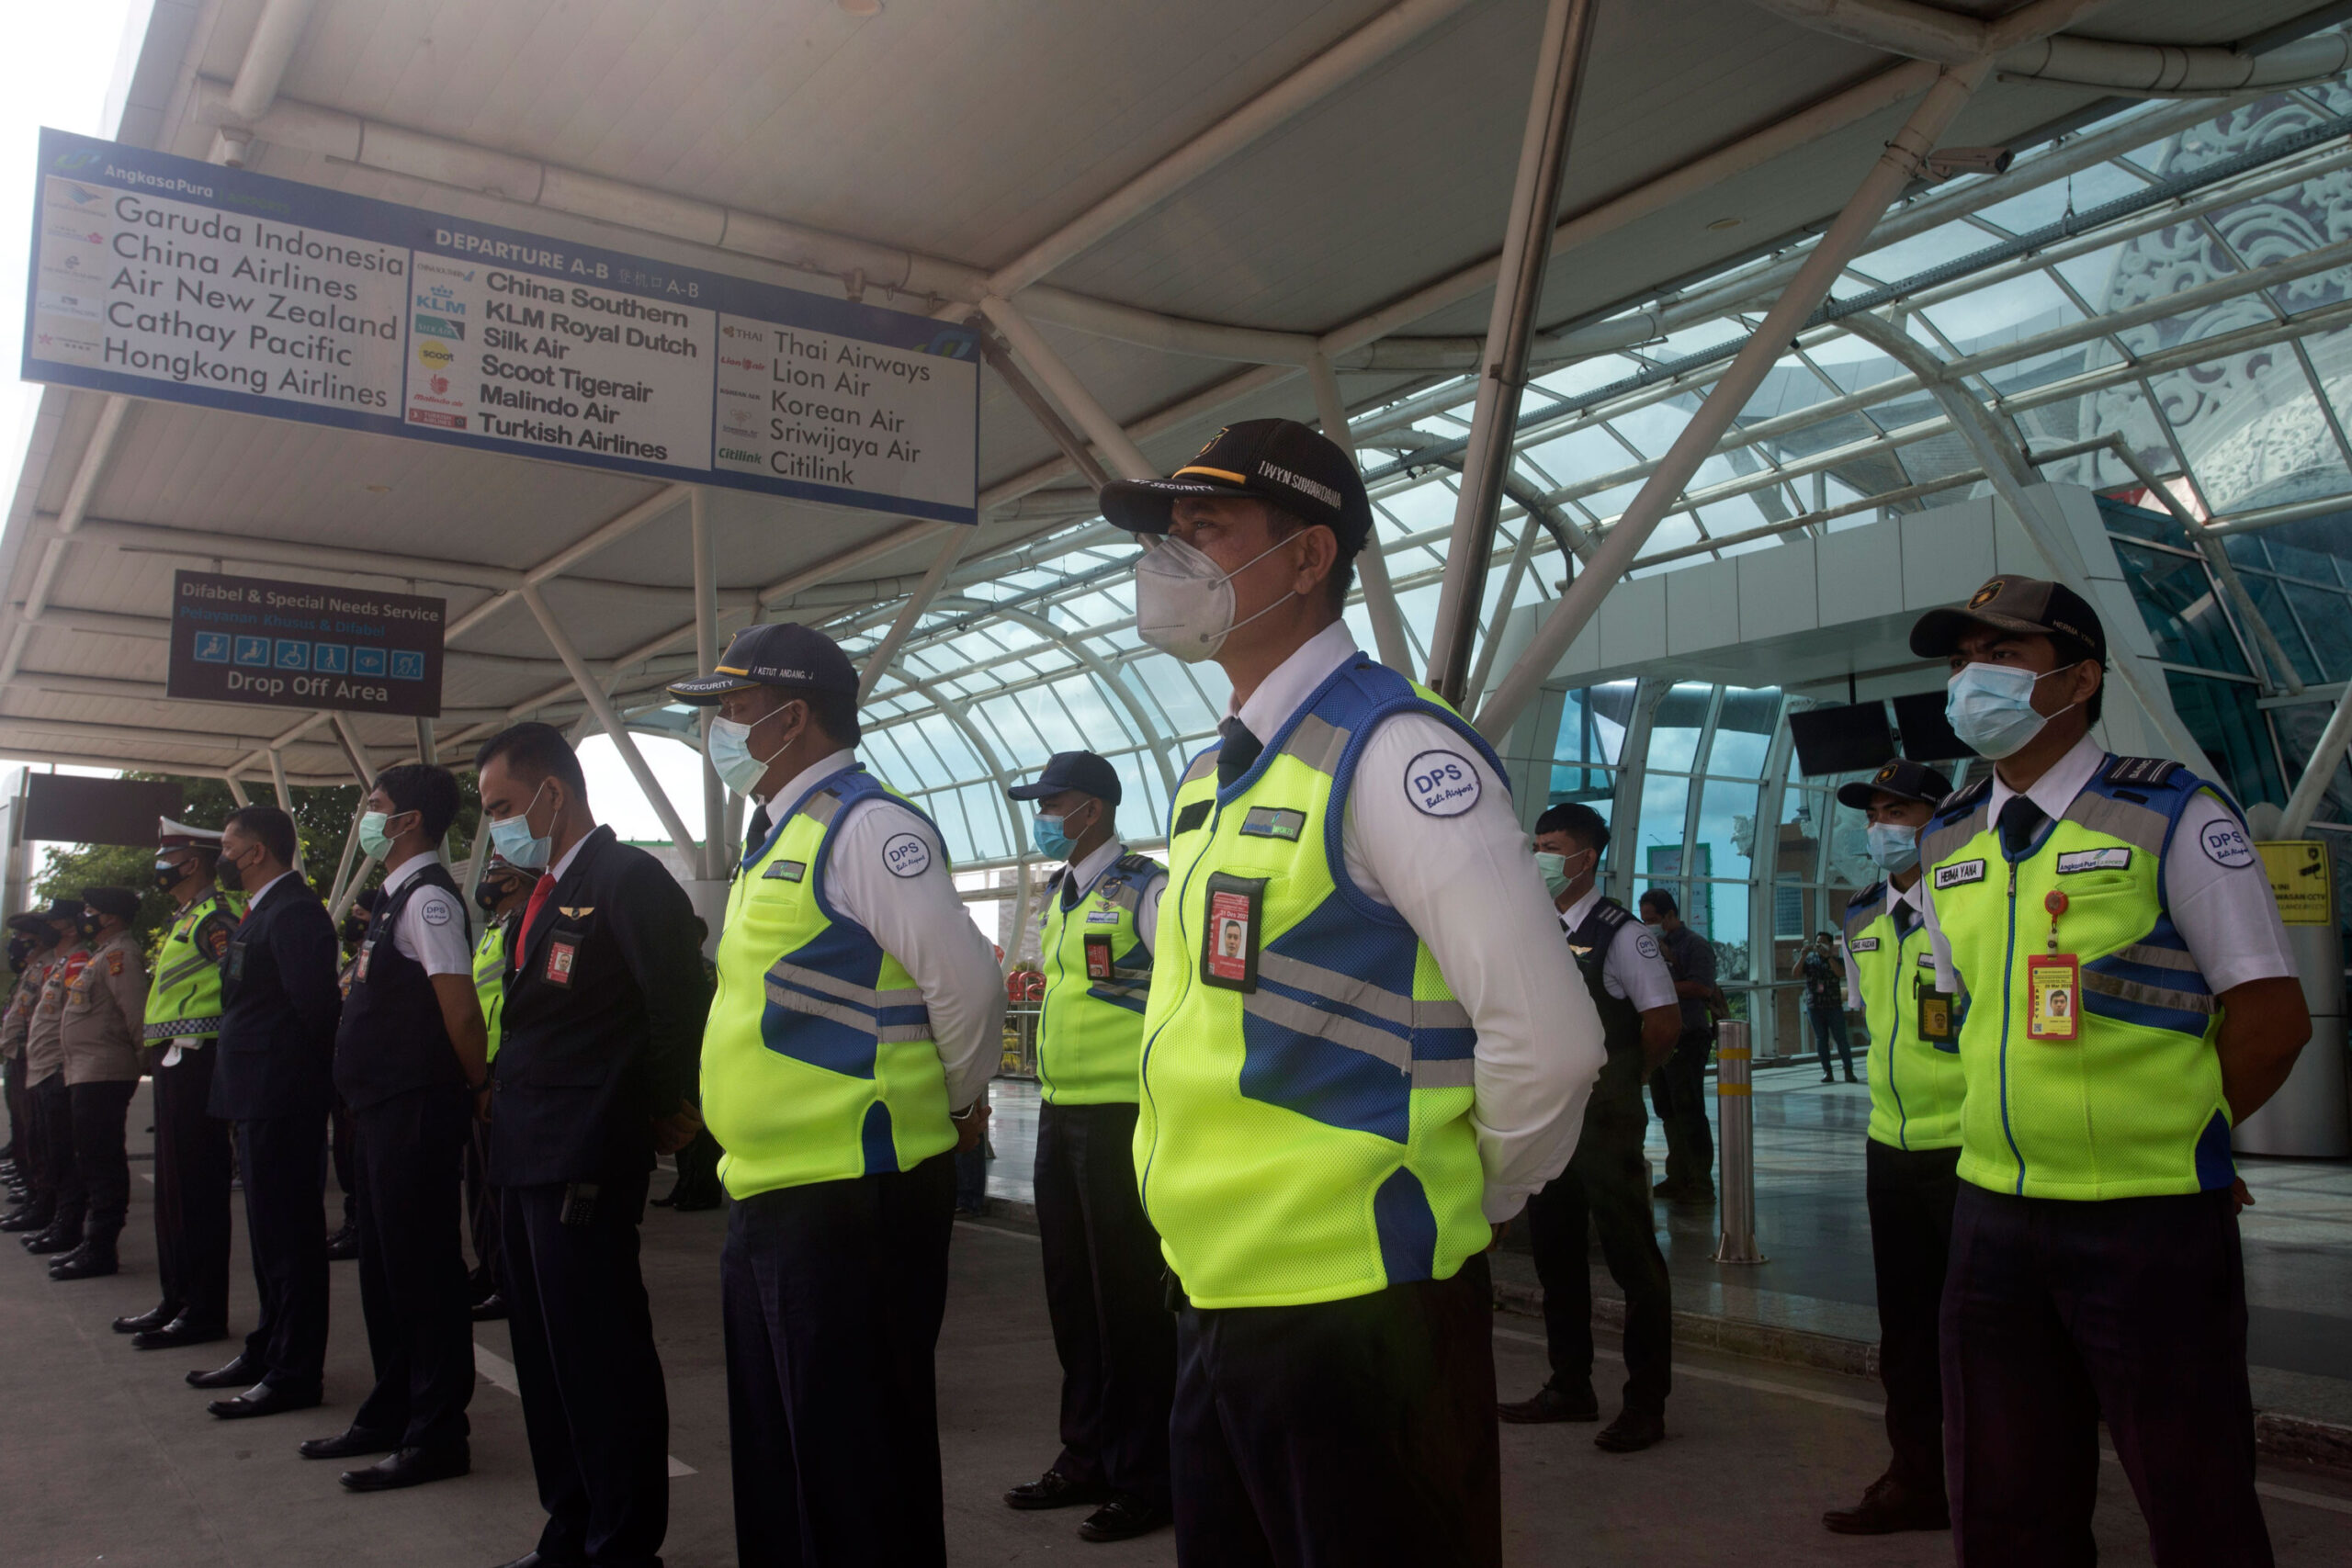 <i>Firdia Lisnawati/AP</i><br/>Indonesia's Bali and Riau Islands are reopening to visitors from 19 countries starting Thursday. Airport security personnel are shown here during a briefing in preparation of the reopening of International Ngurah Rai Airport in Bali